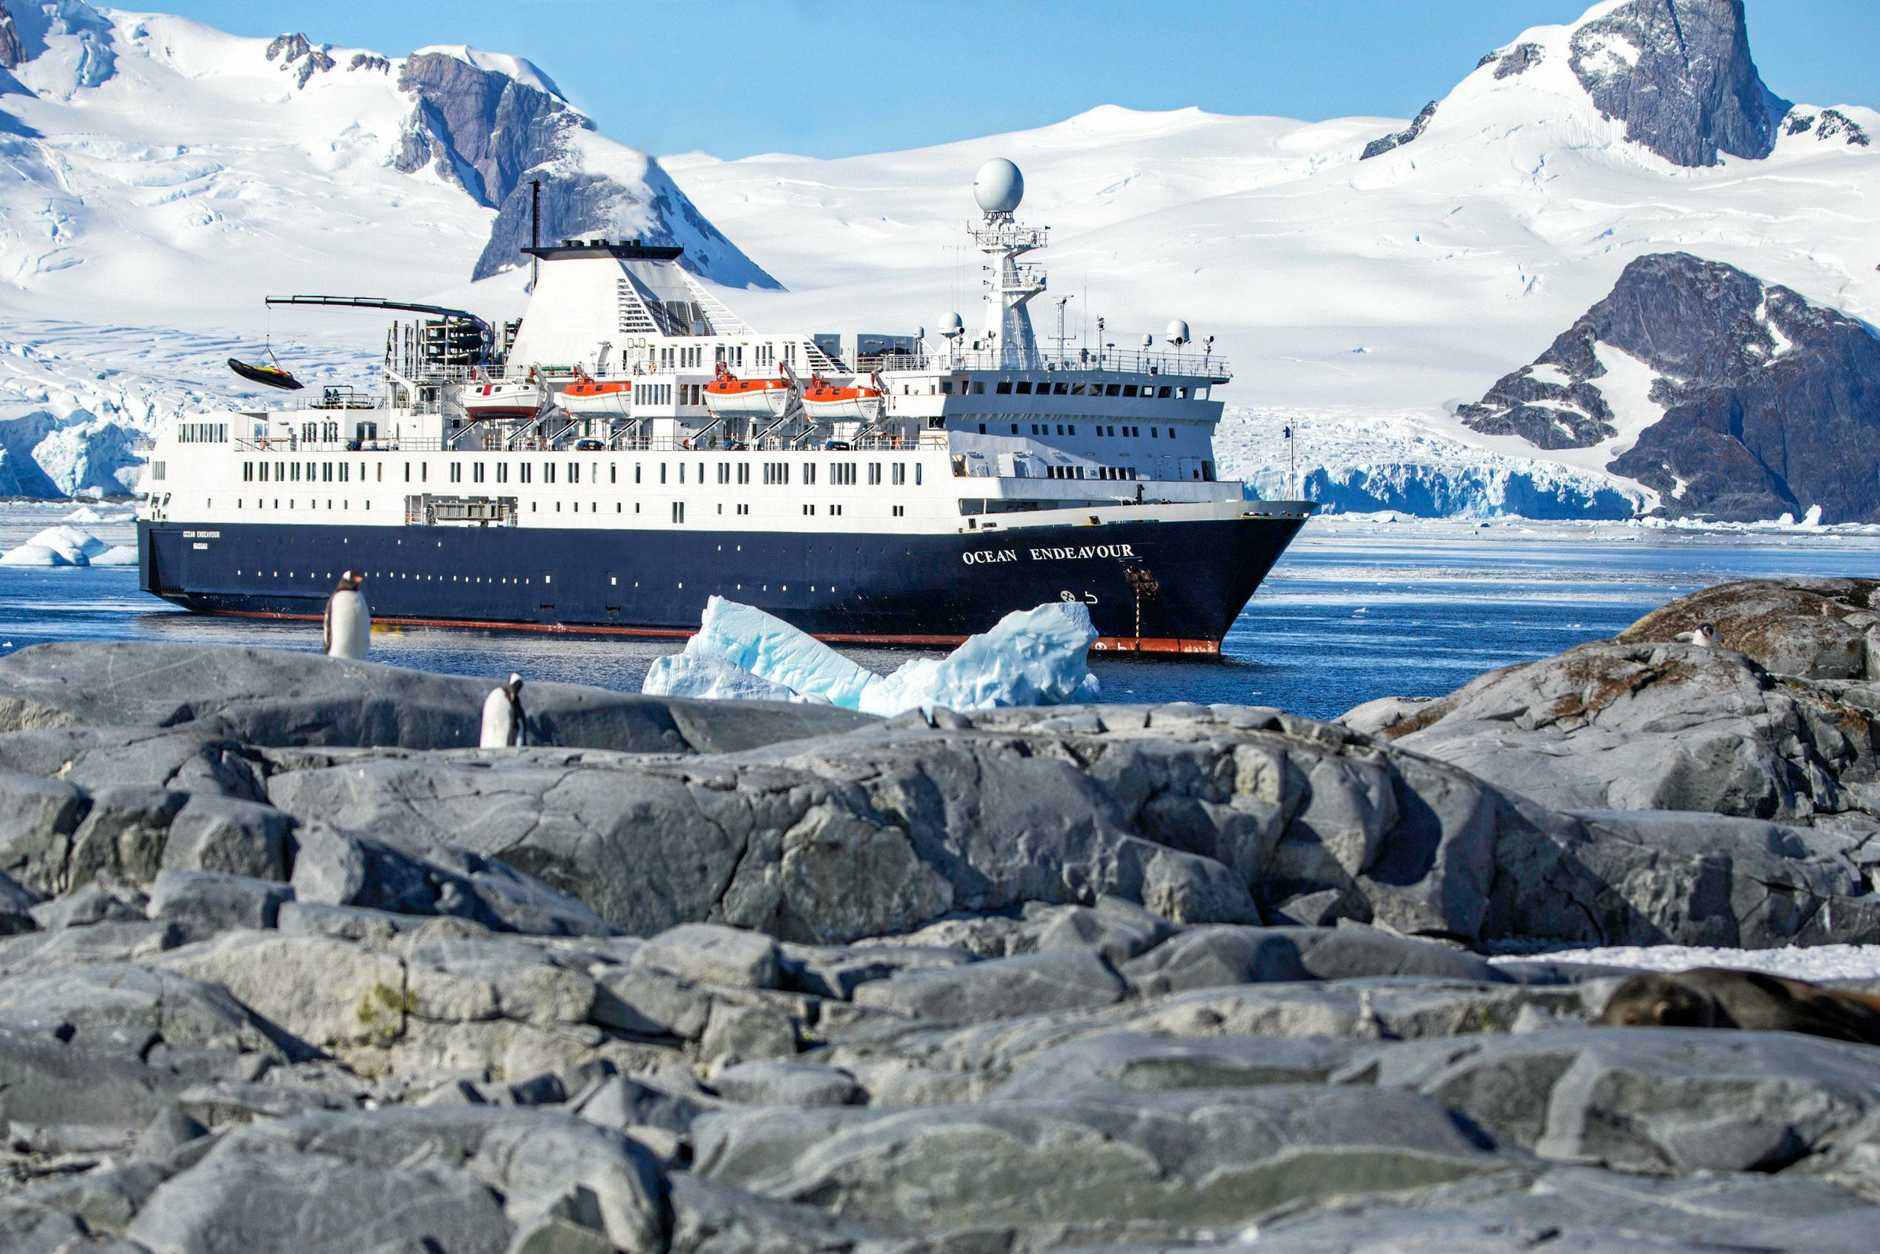 Chimu Adventures have leased a ship, in partnership with Intrepid Group, which is capable of going to Antarctica.